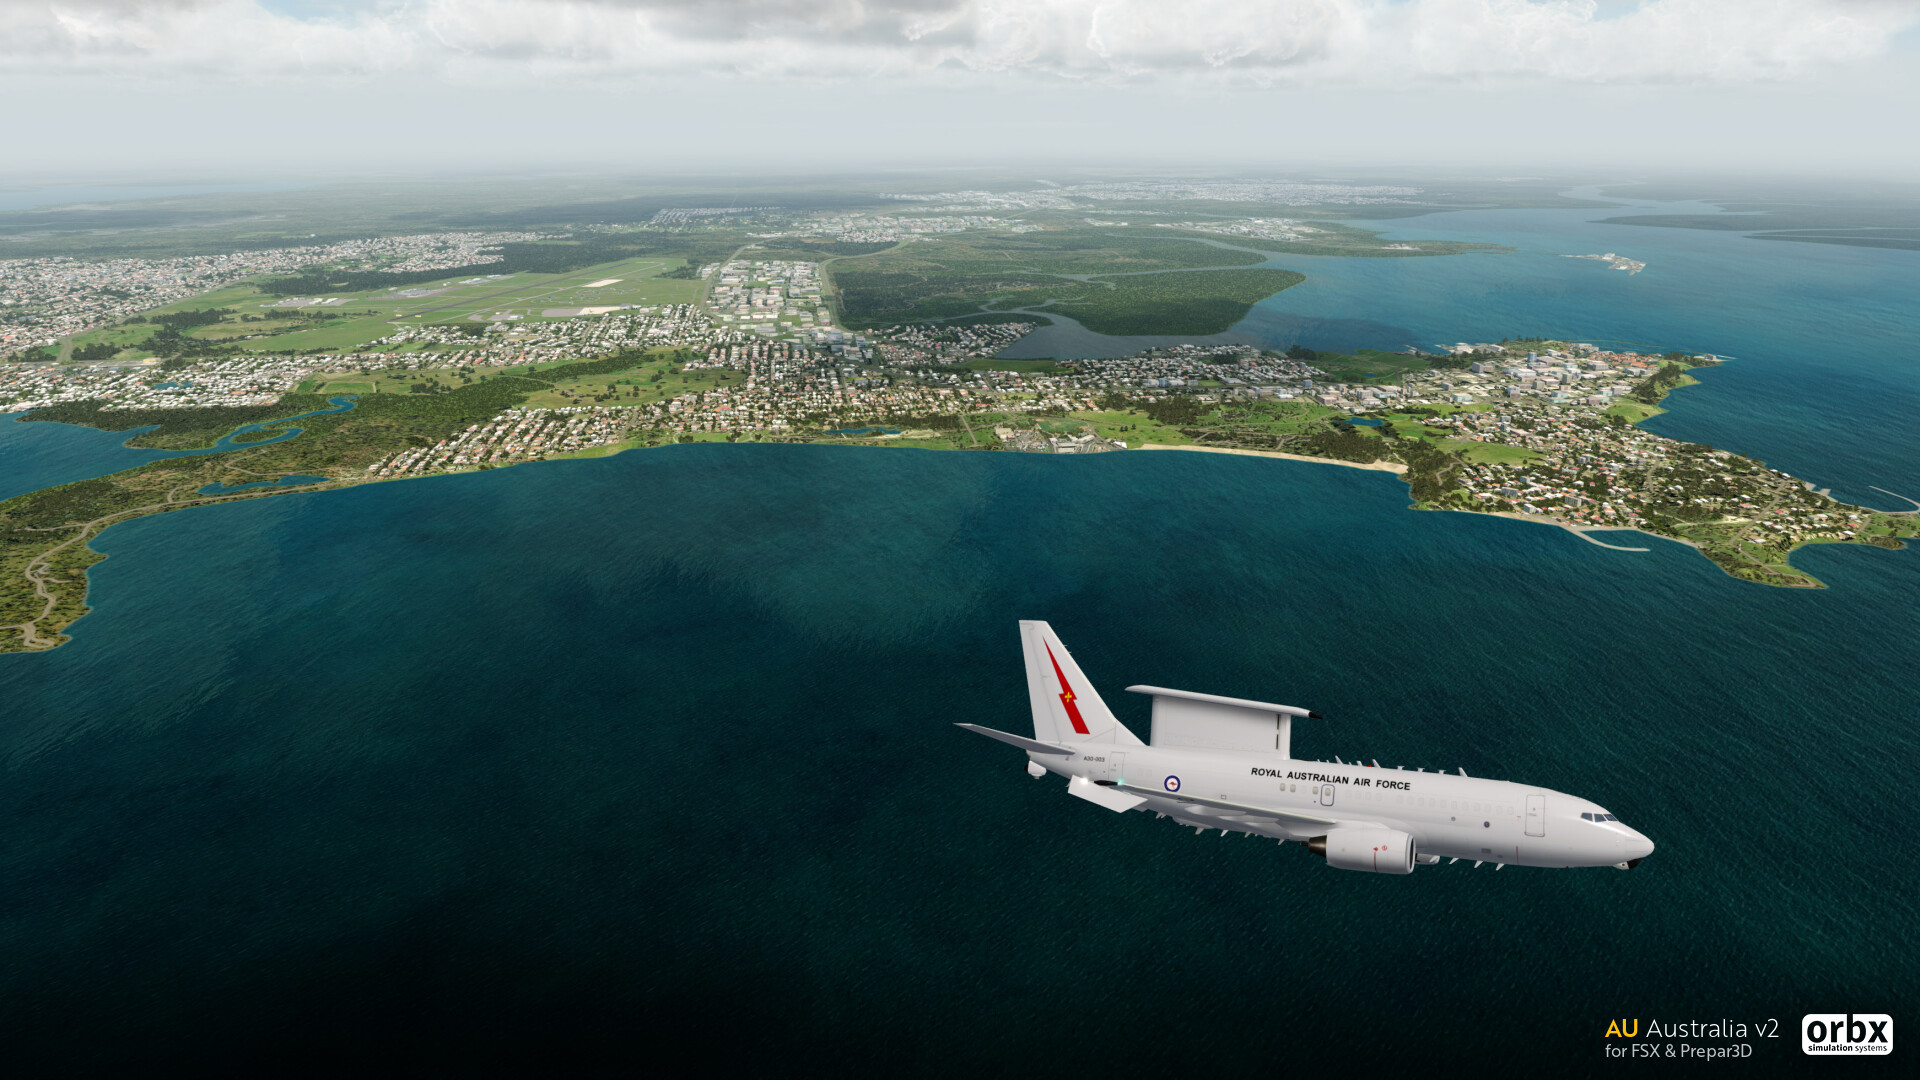 announcement] Australia V2 for P3D and FSX: Official